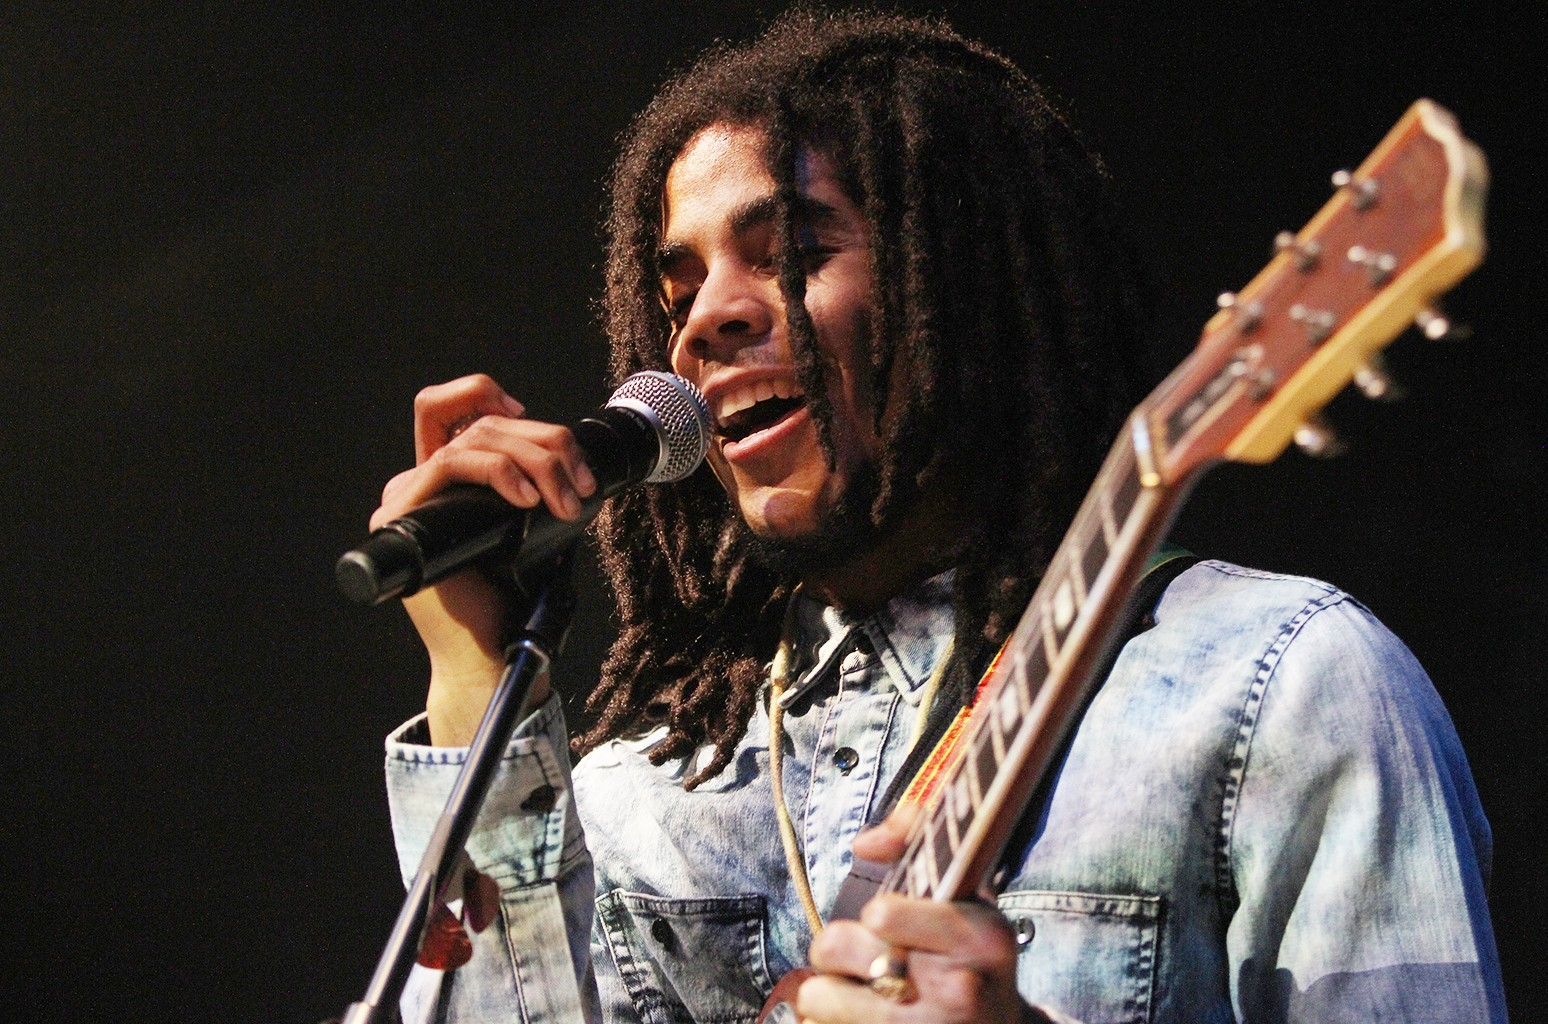 Skip Marley performs at The Paramount on Sept. 1, 2015 in New York City.